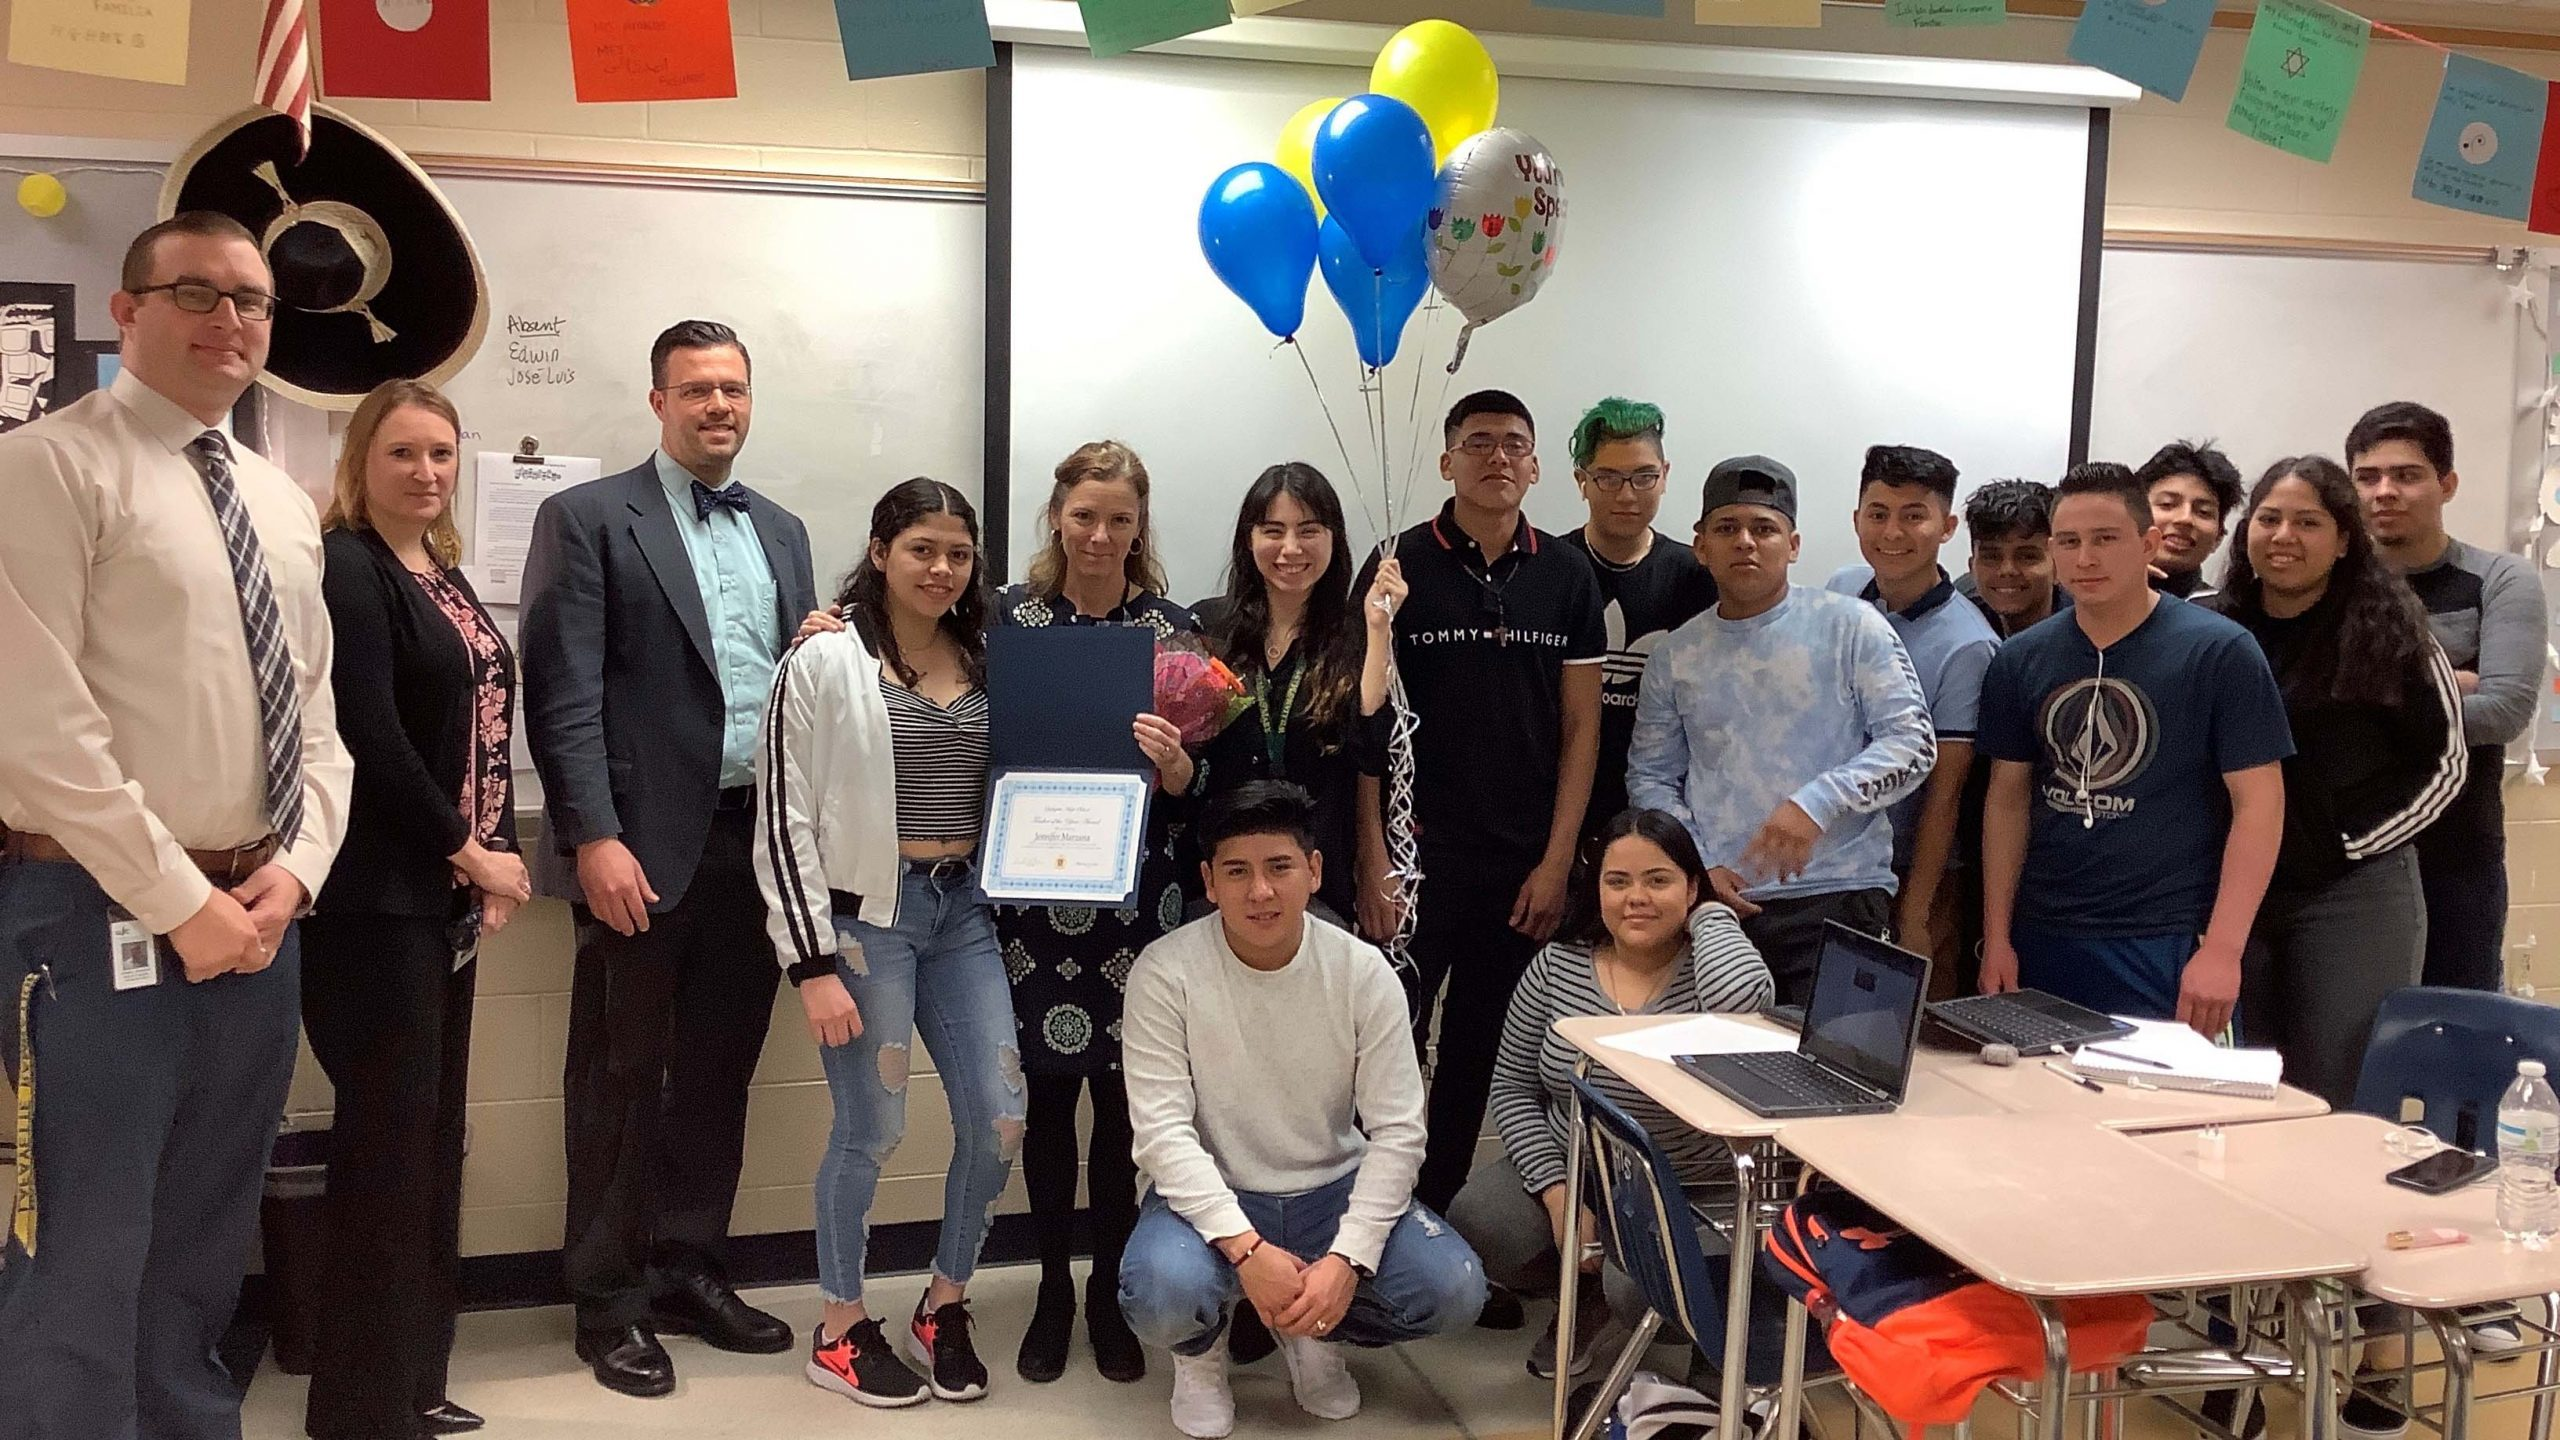 Jennifer Marzana poses with her class and LHS administration.